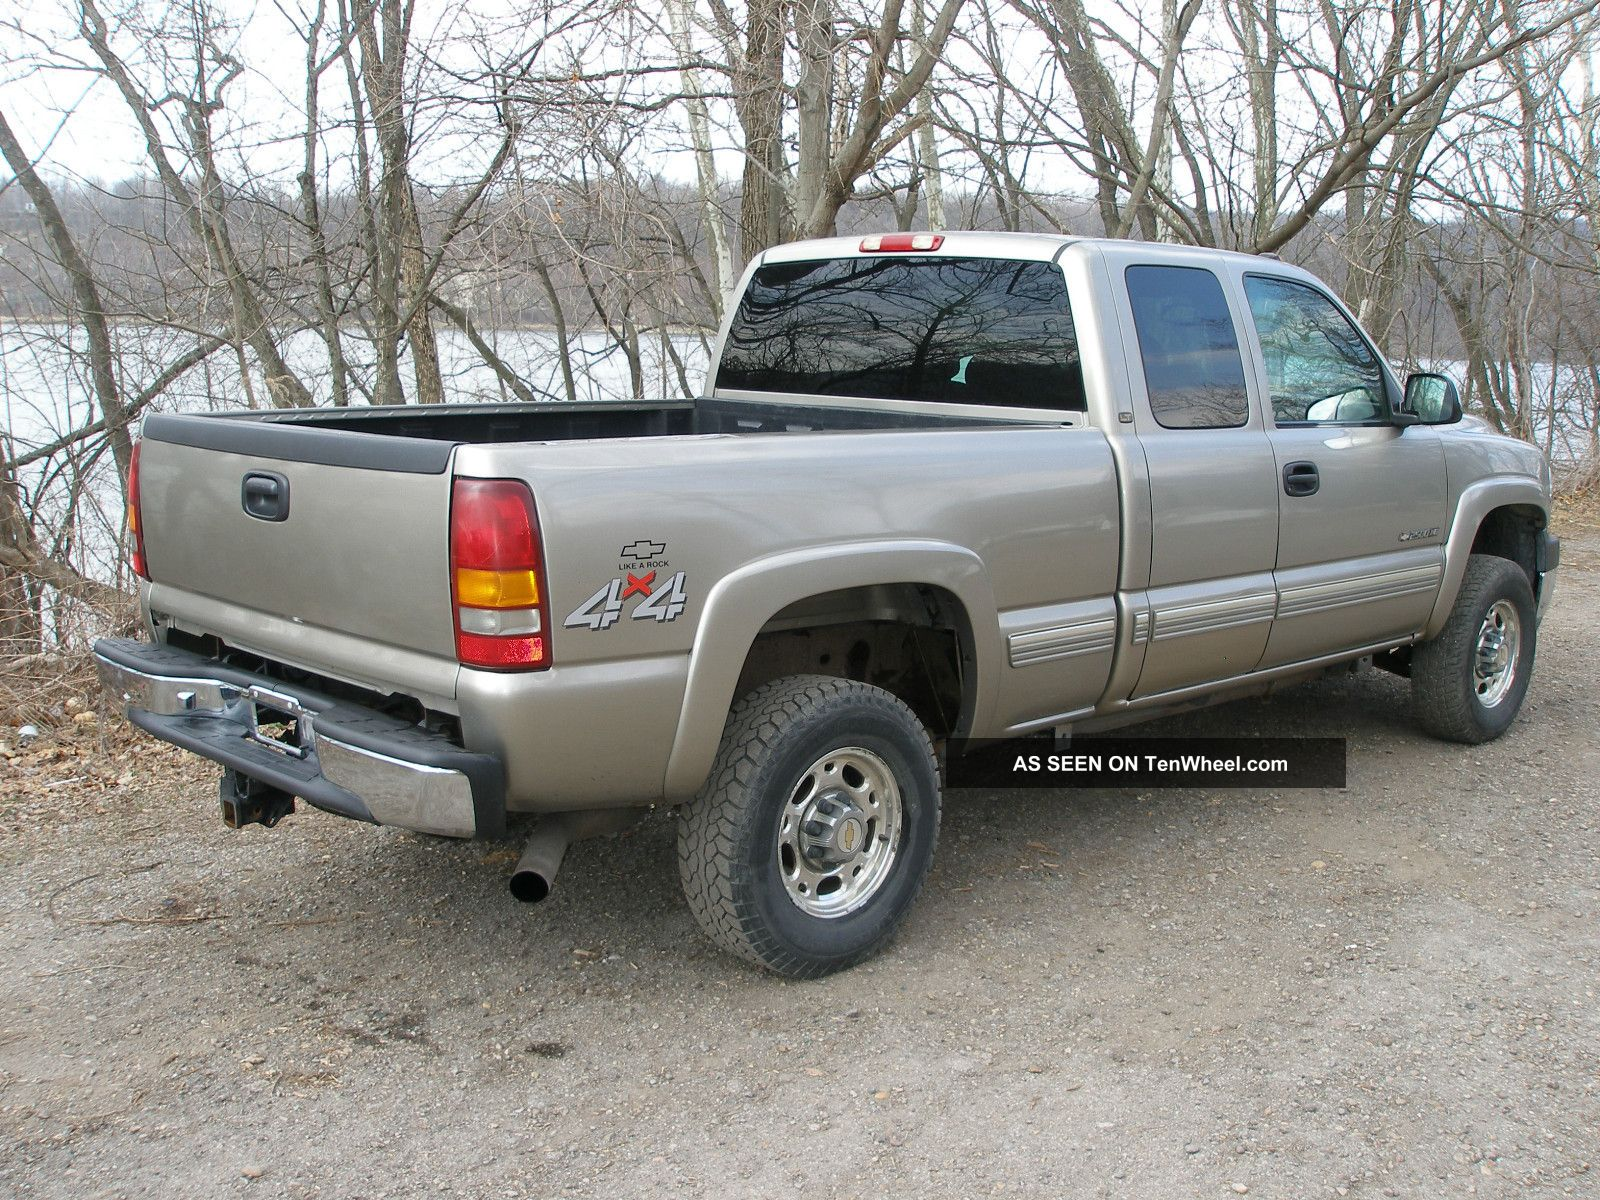 2001 chevy silverado lt 2500hd 4wd extended cab loaded silverado. Cars Review. Best American Auto & Cars Review